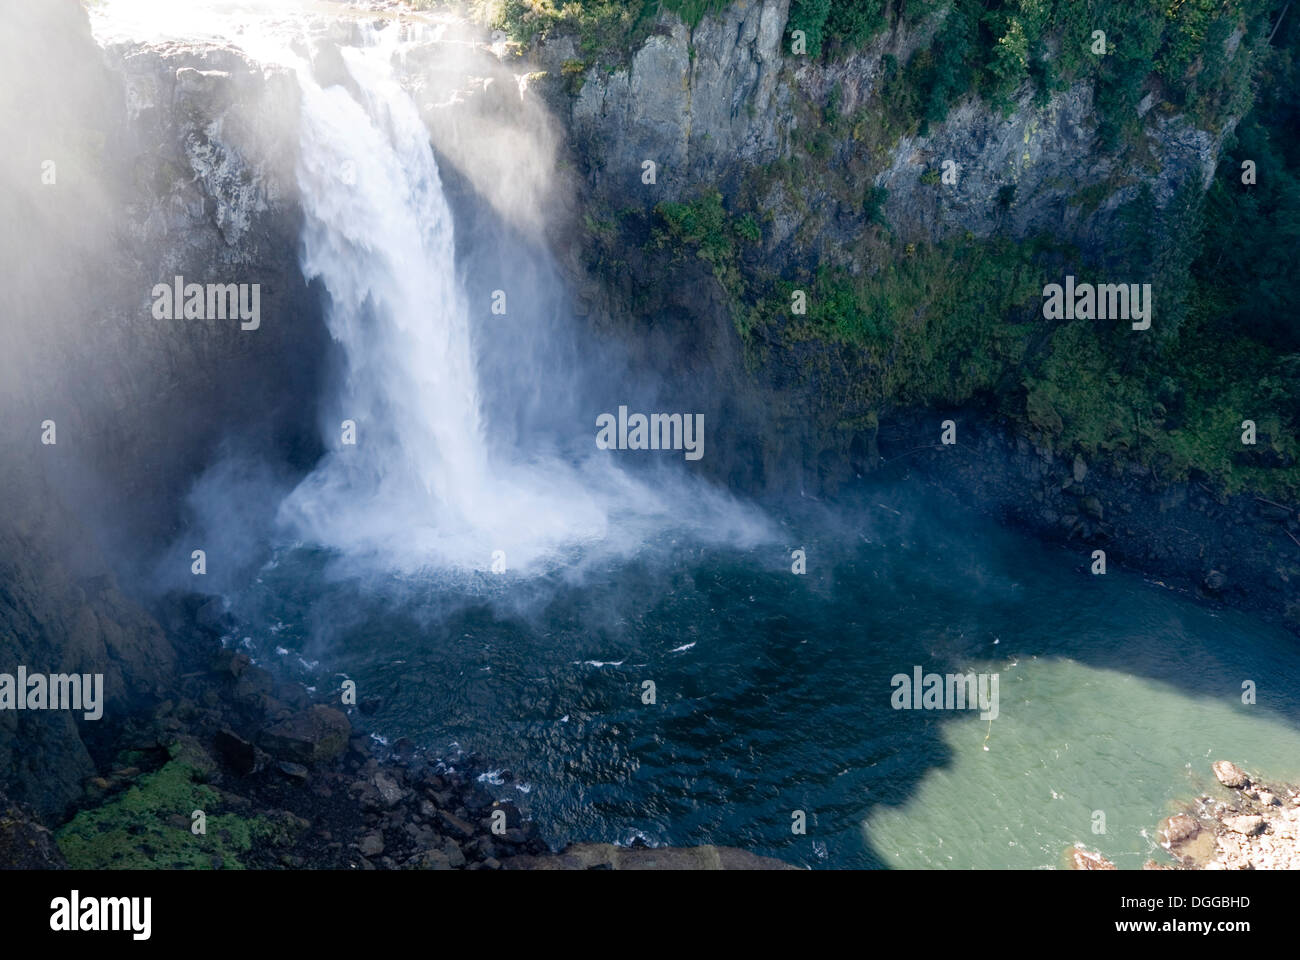 Water pouring over the top of Snoqualmie Falls waterfall into a natural river canyon, Washington State, USA Stock Photo